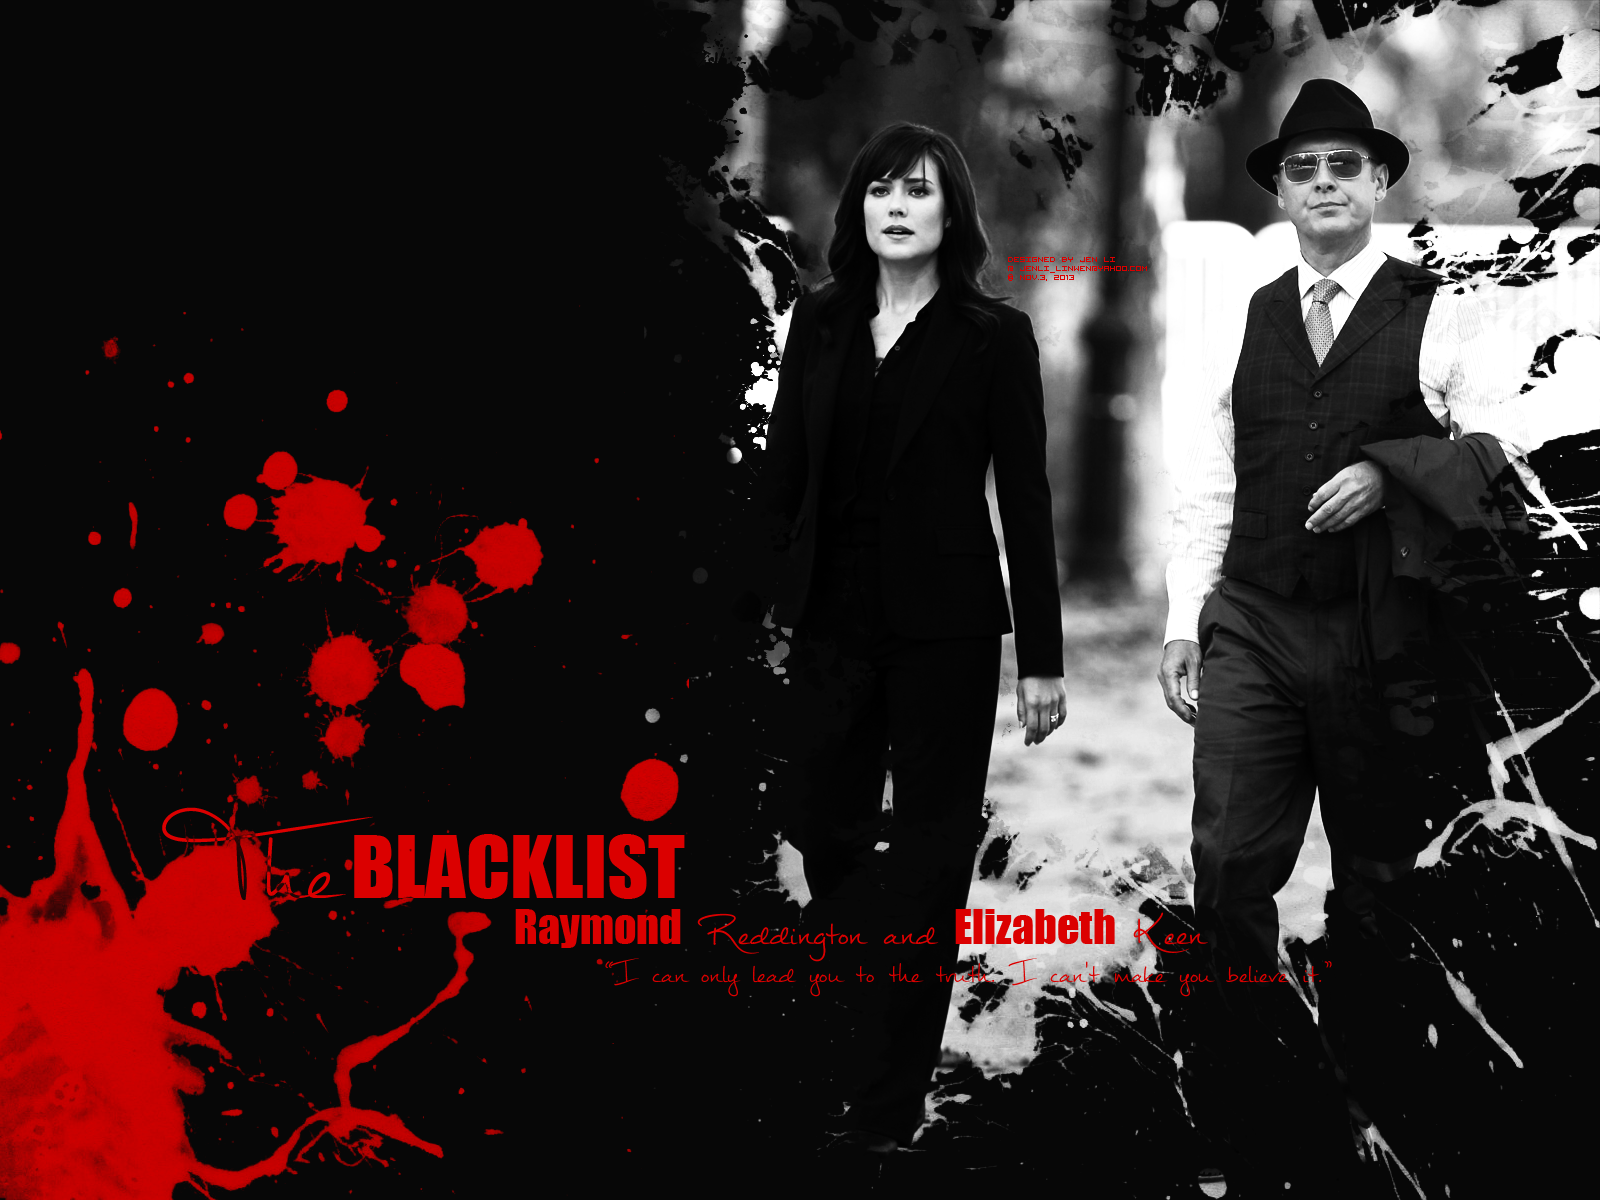 Red and Liz   The Blacklist Wallpaper 36004897 1600x1200